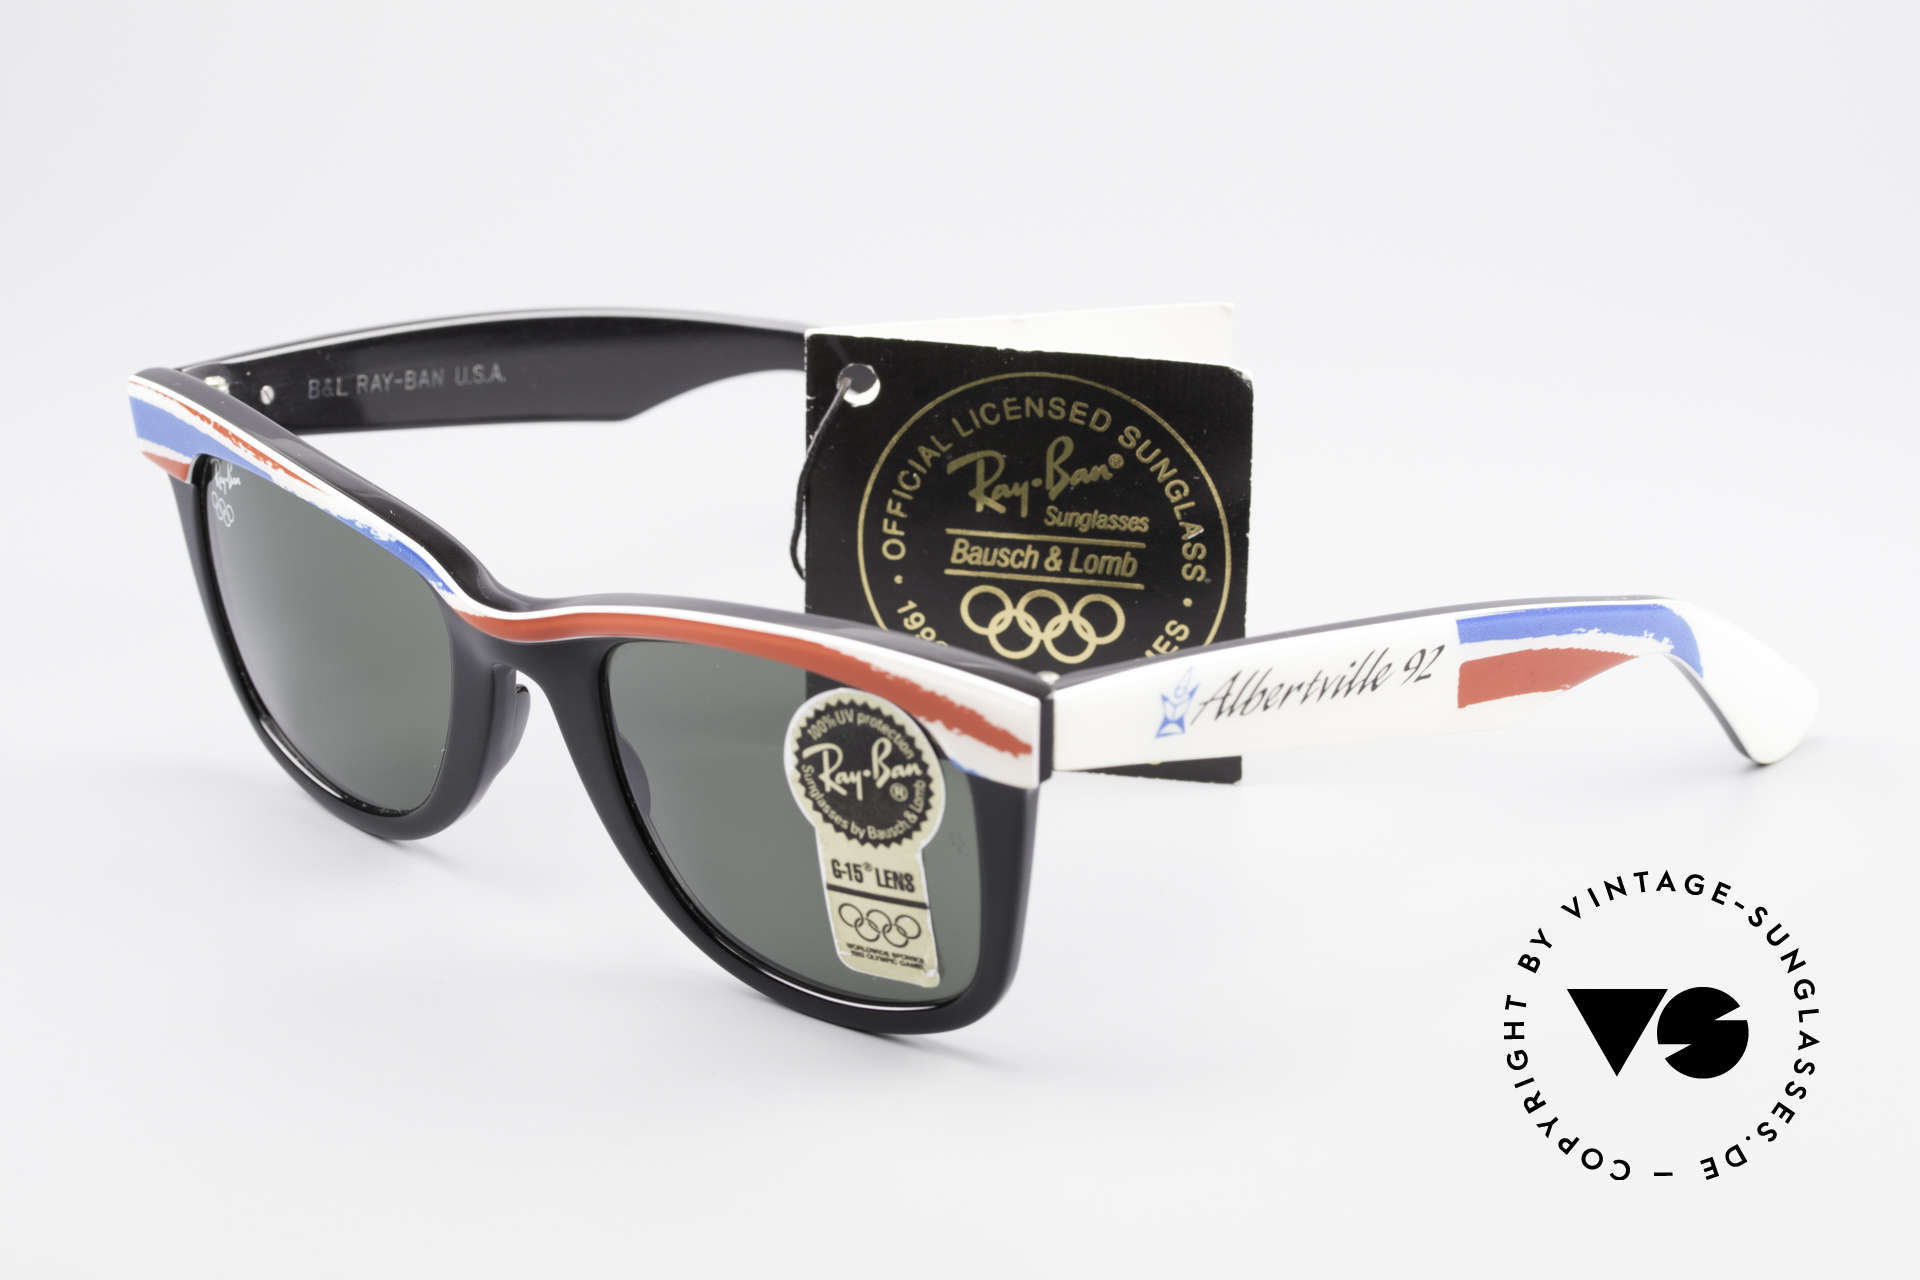 Ray Ban Wayfarer I Olympic Games Albertville, Size: medium, Made for Men and Women